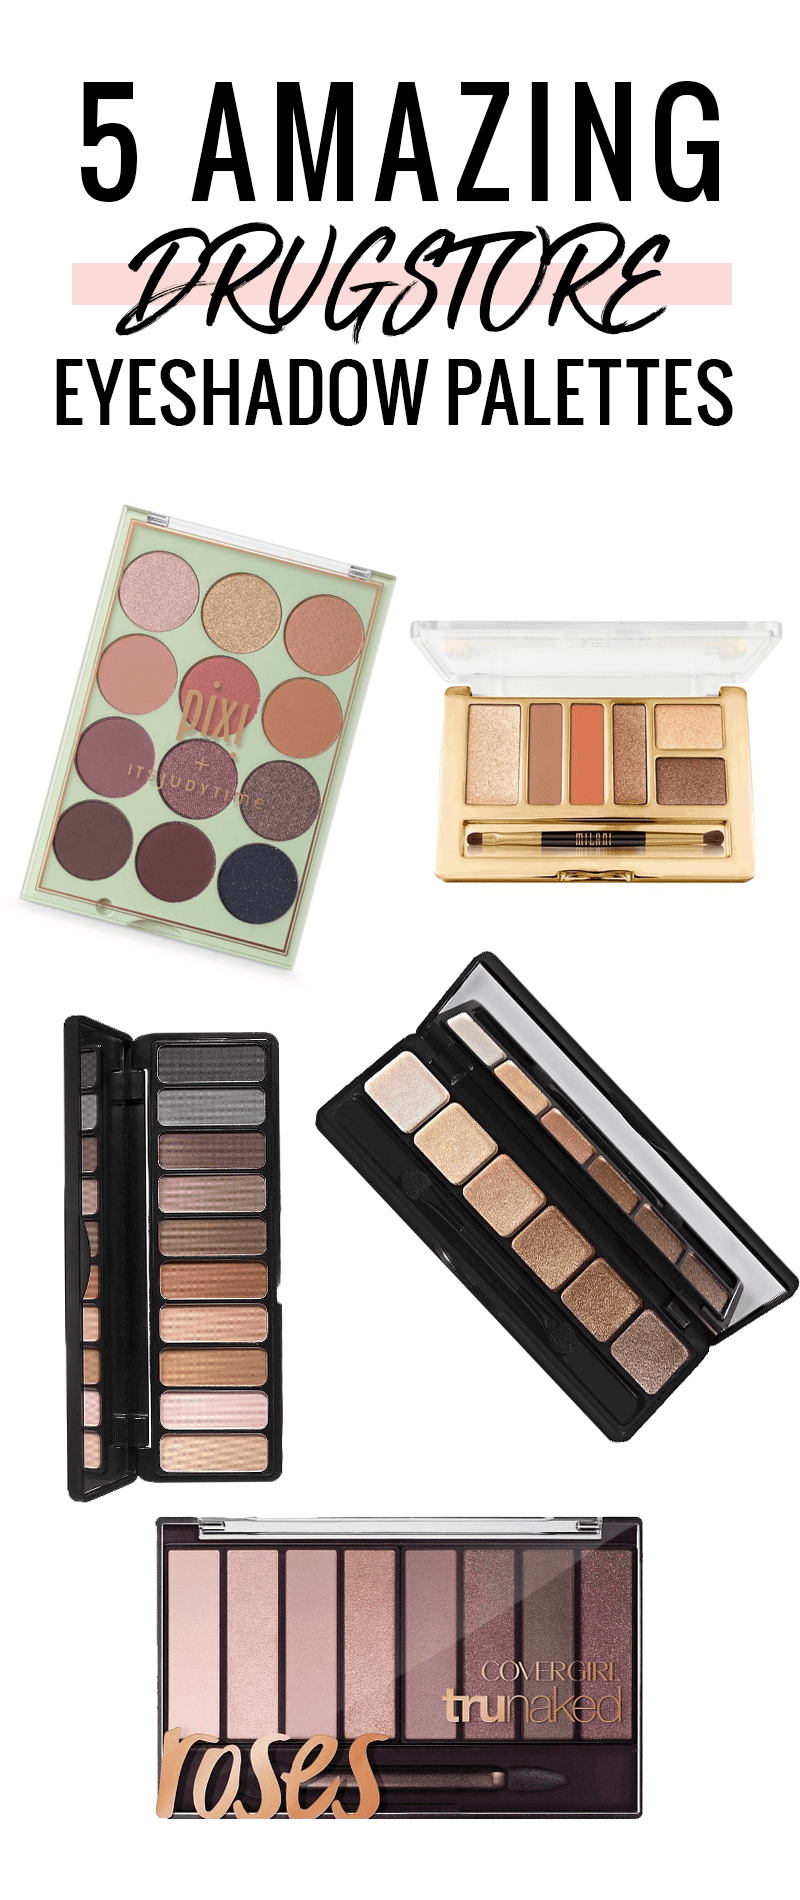 5 Amazing Drugstore Eyeshadow Palettes by popular beauty blogger Meg O. on the Go